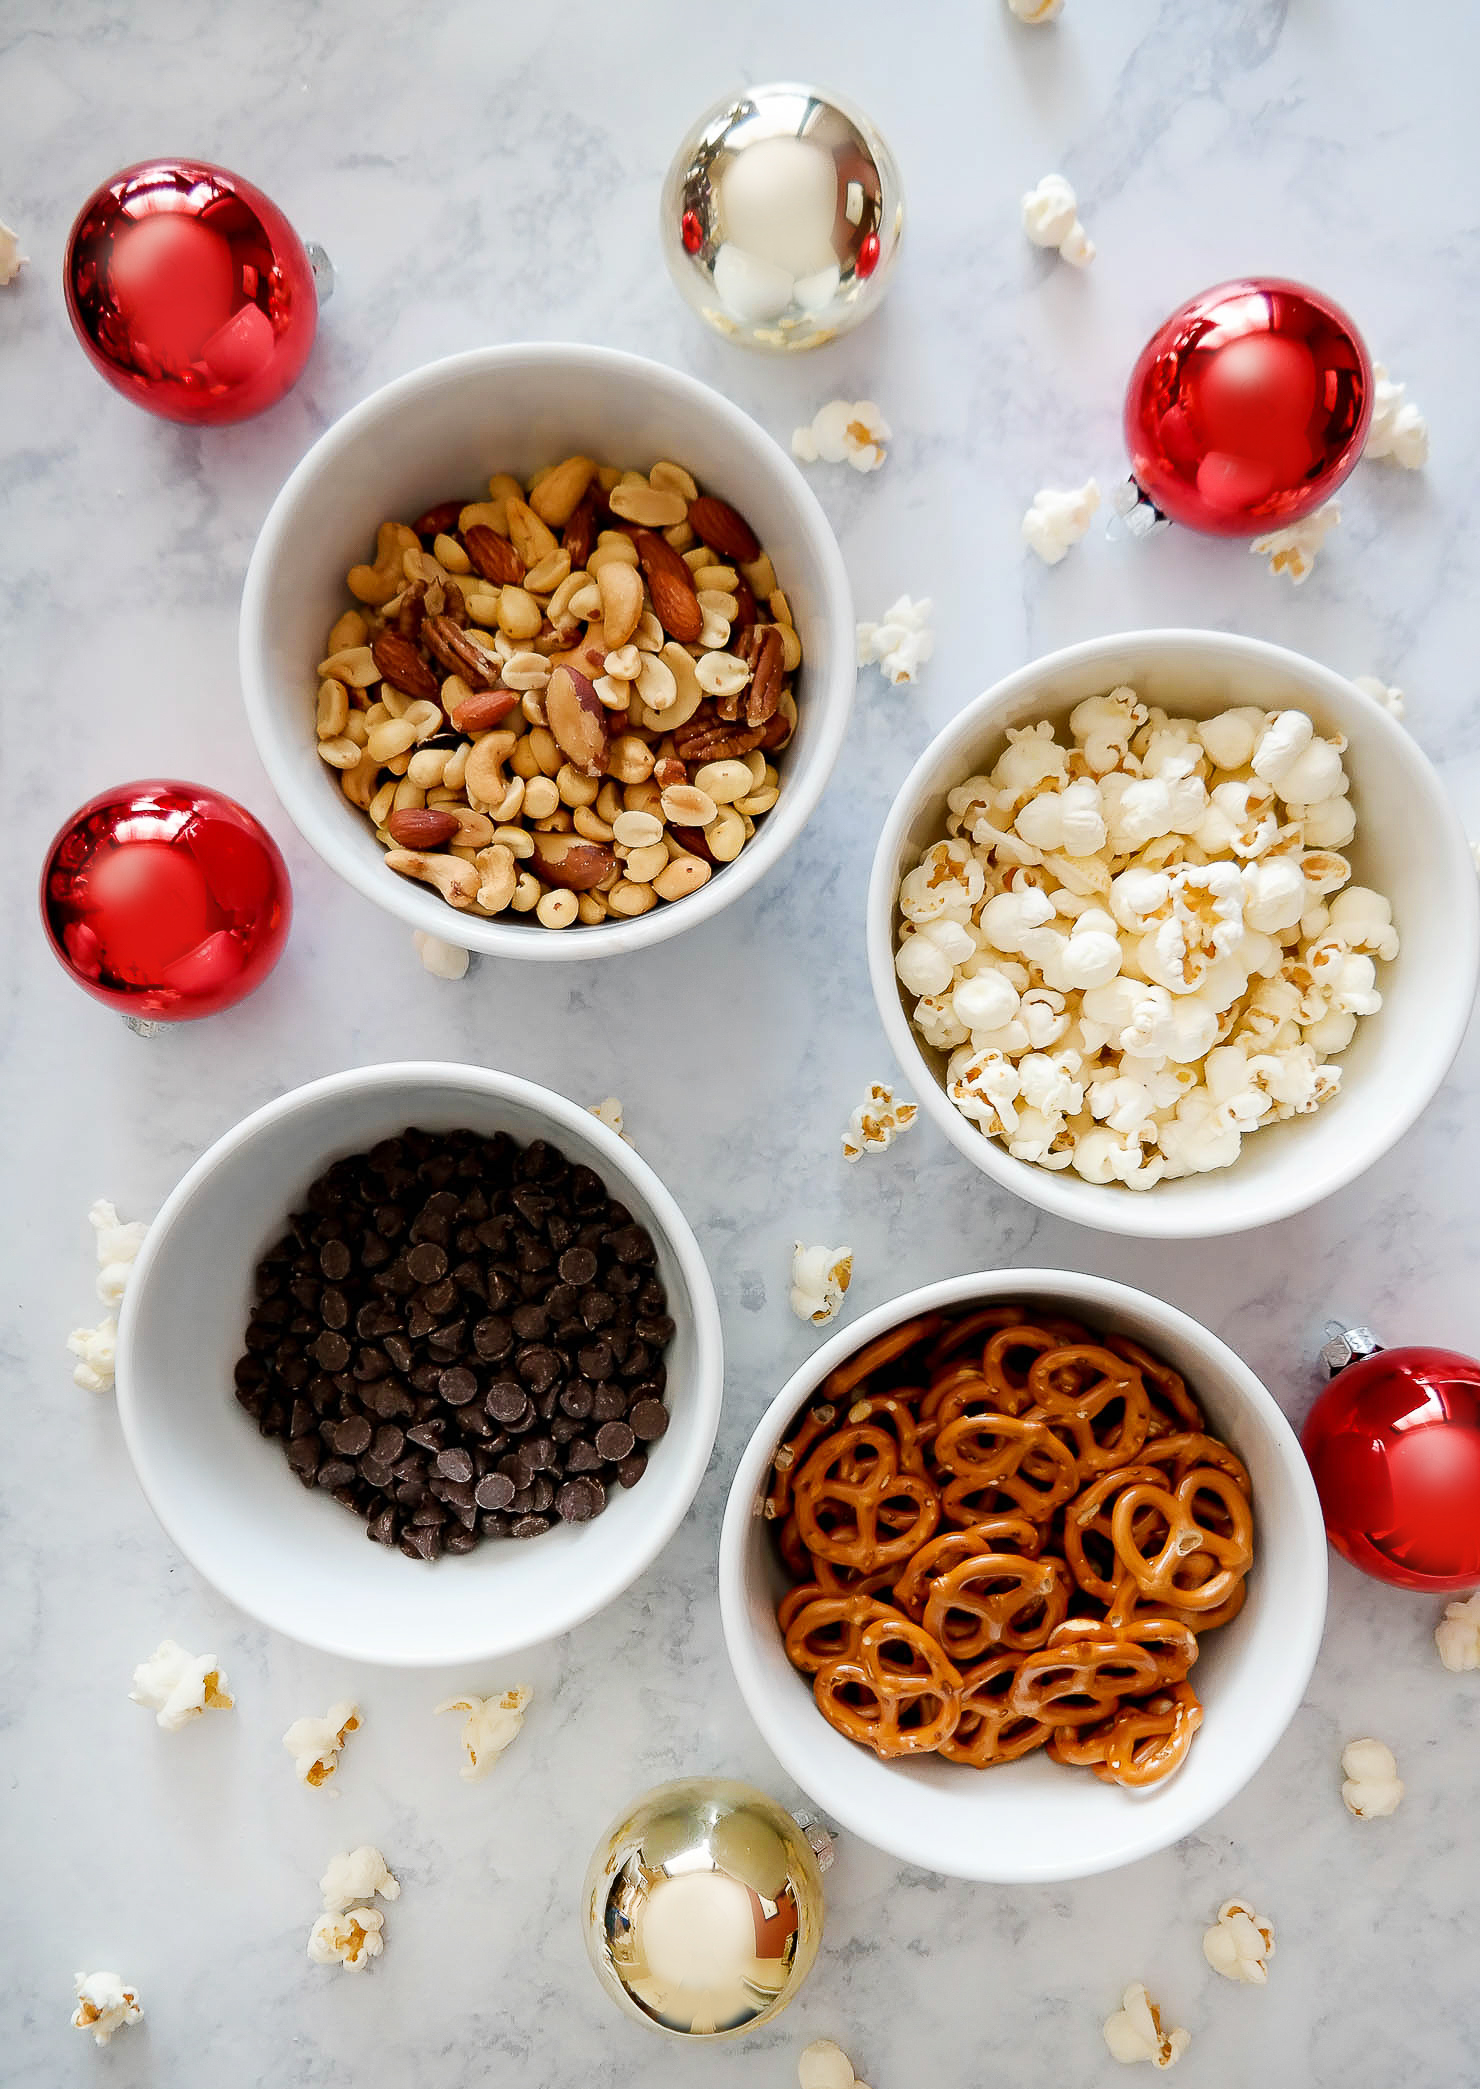 frito-lay-white-elephant-gift-ideas-reindeer-crunch-recipe-updated-2